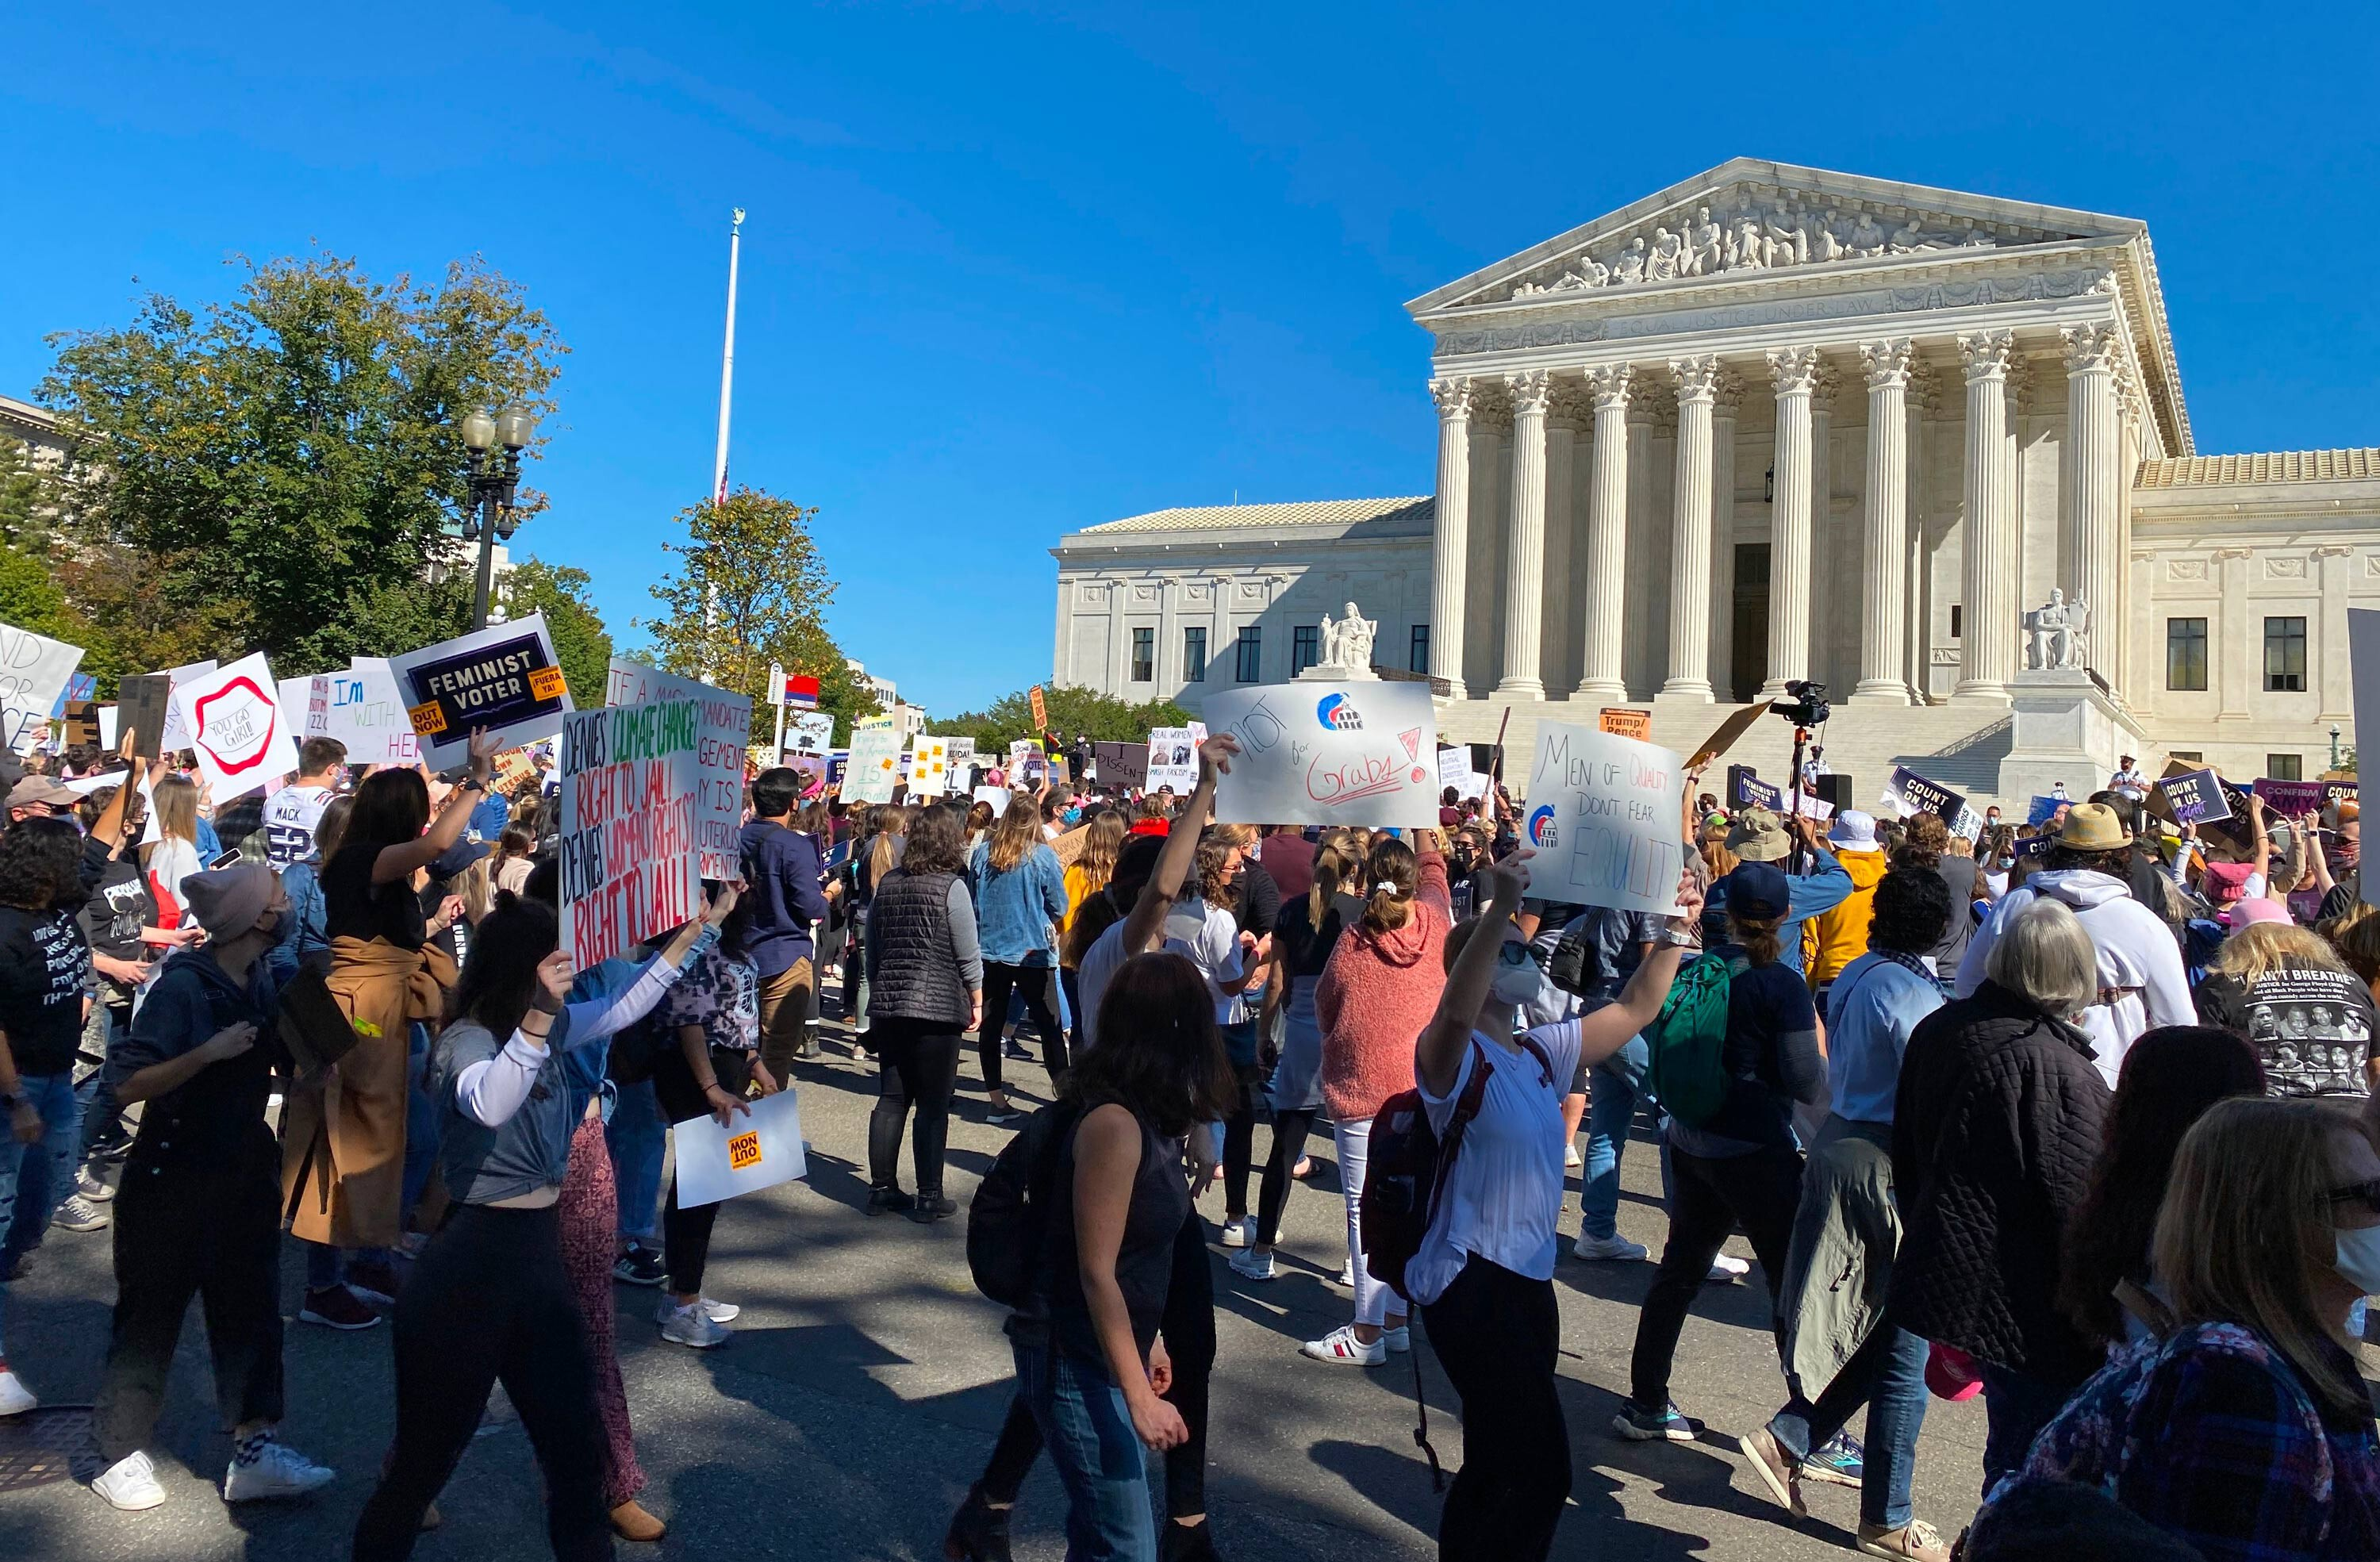 More than 600 reproductive rights marches are set for Saturday. Here's what you need to know